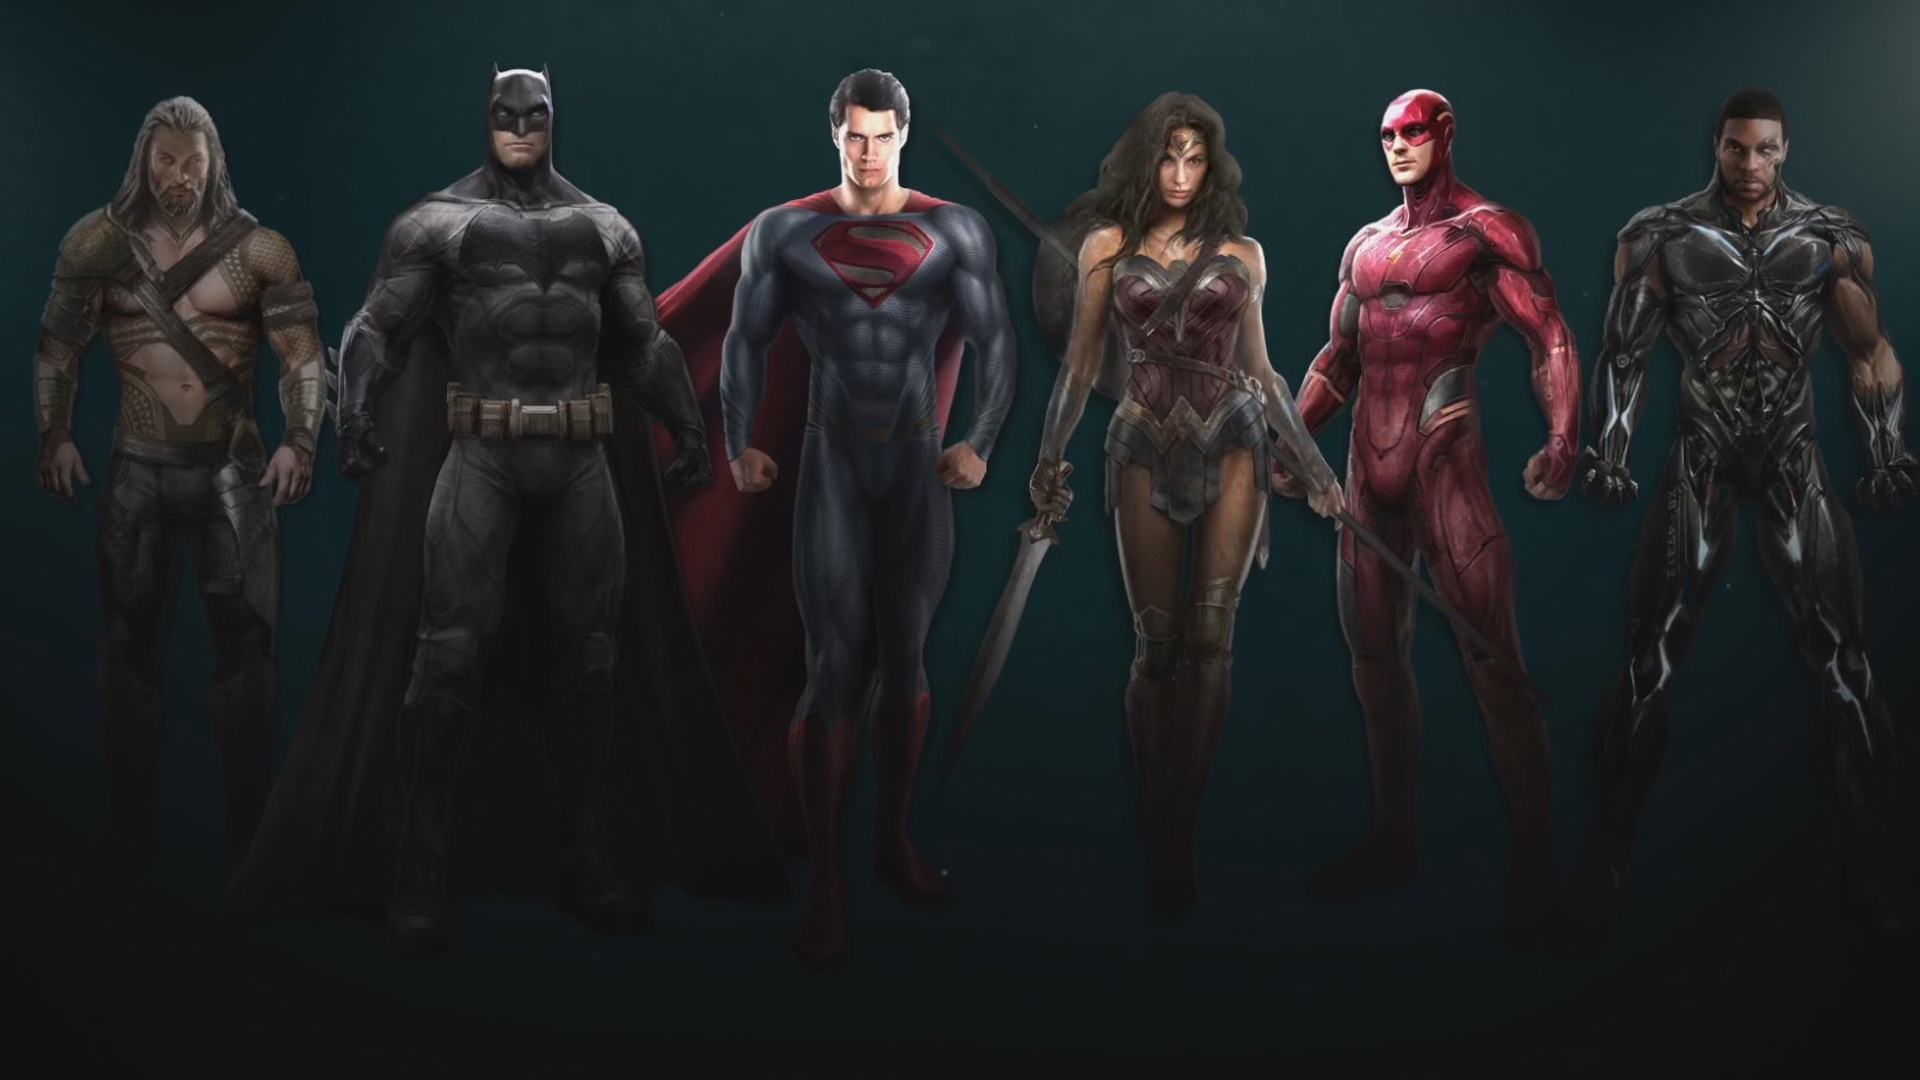 Justice League Mortal' First Look At Batman, The Flash, Aquaman and More